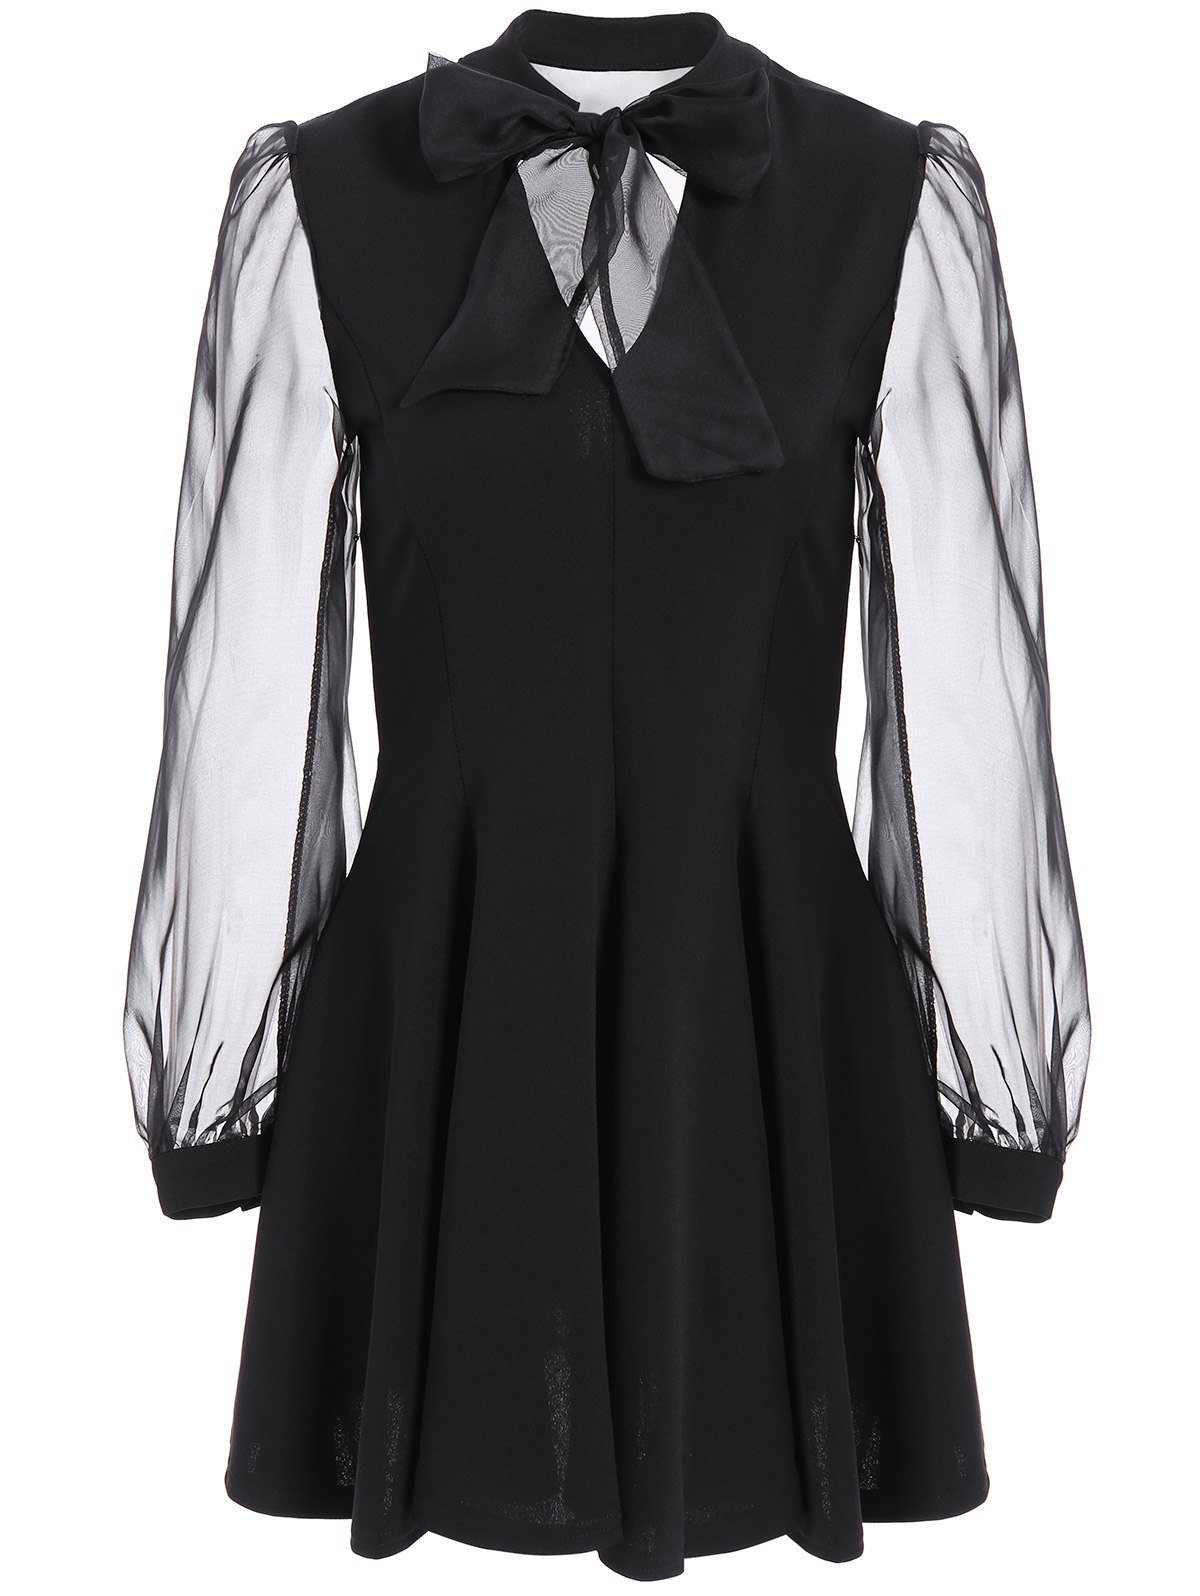 Bow Tie Collar Mesh Insert Dress - BLACK L